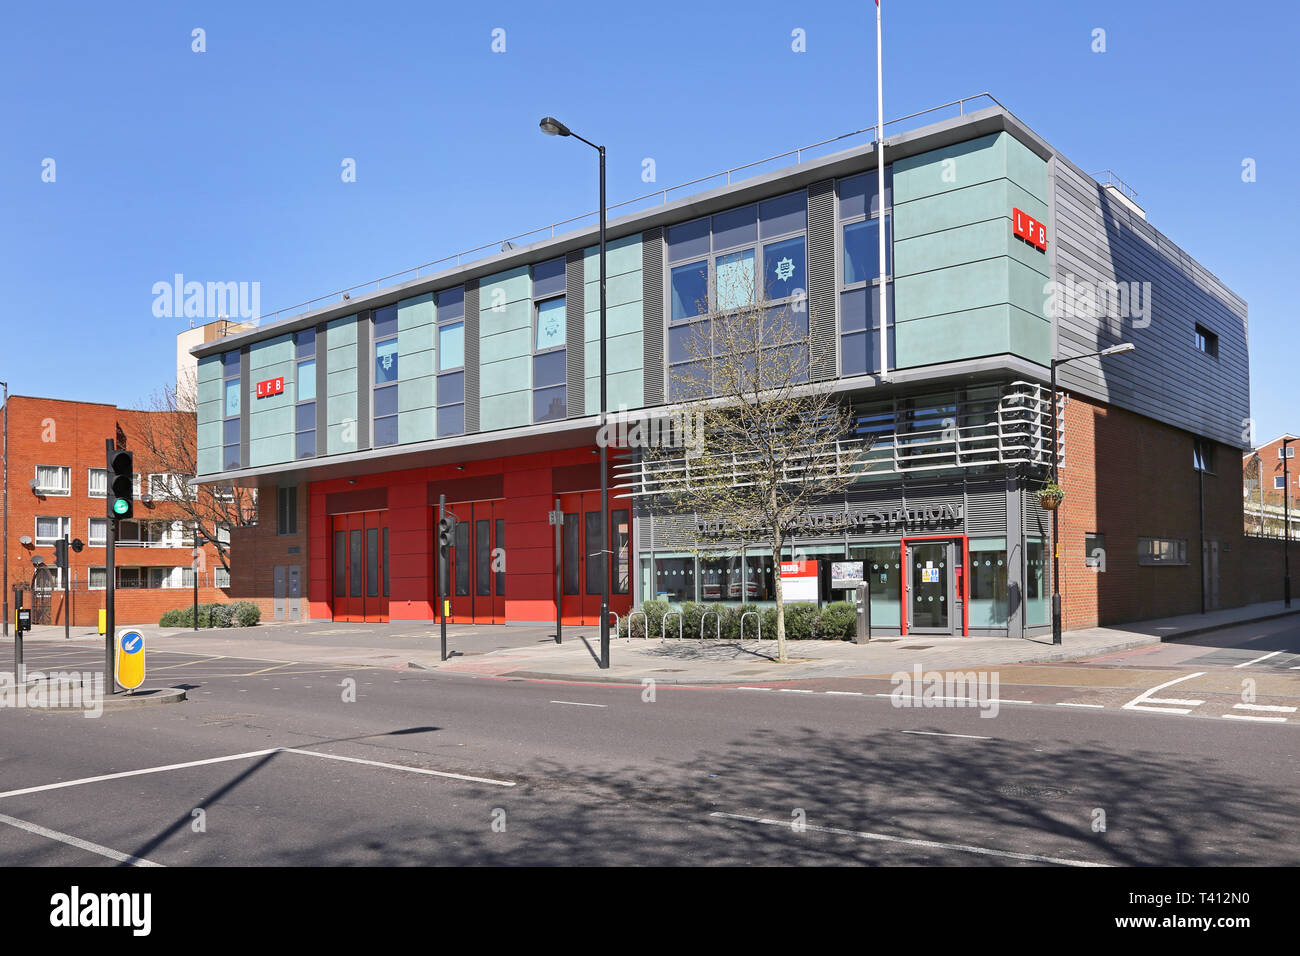 New London Fire Brigade Fire Station on the Old Kent Road, Southwark, London, UK. Replaces the Victorian building. - Stock Image